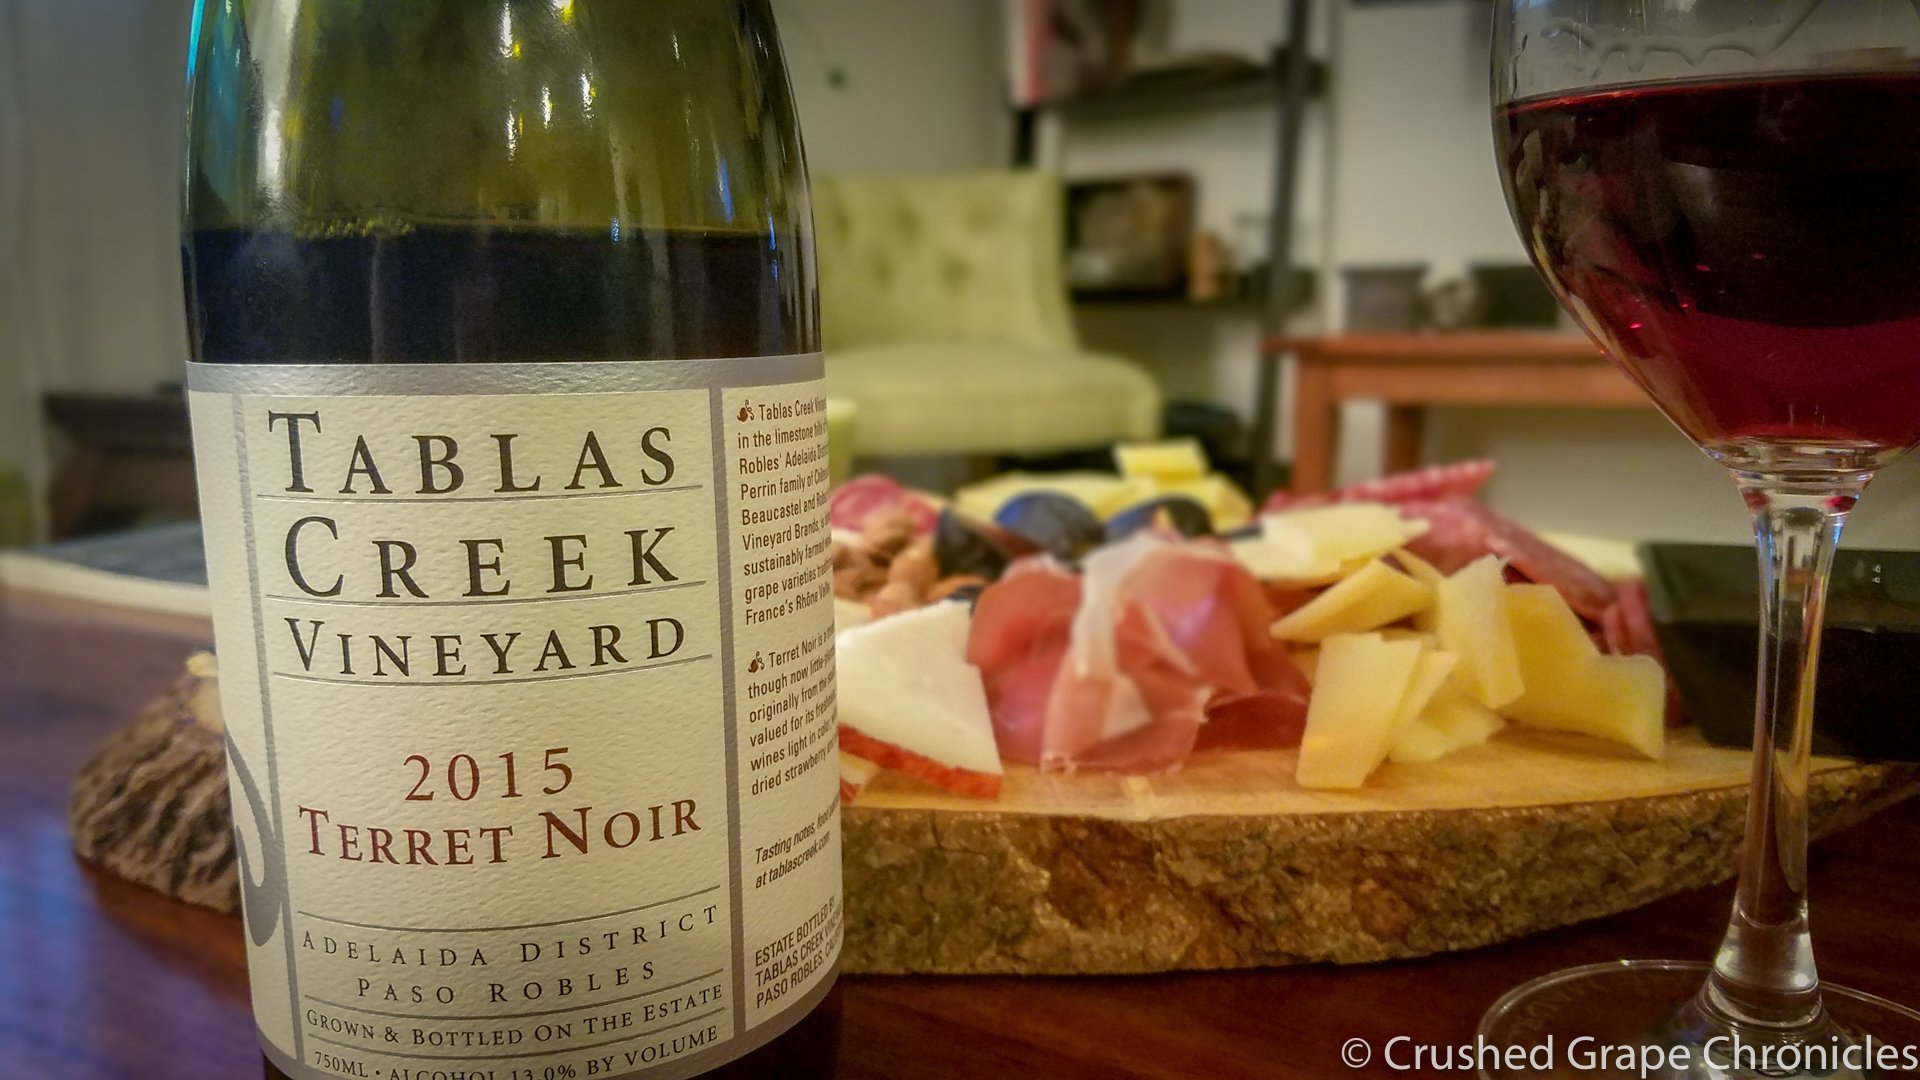 Wine & Cheese Pairing with Tablas Creek Terret Noir 2105